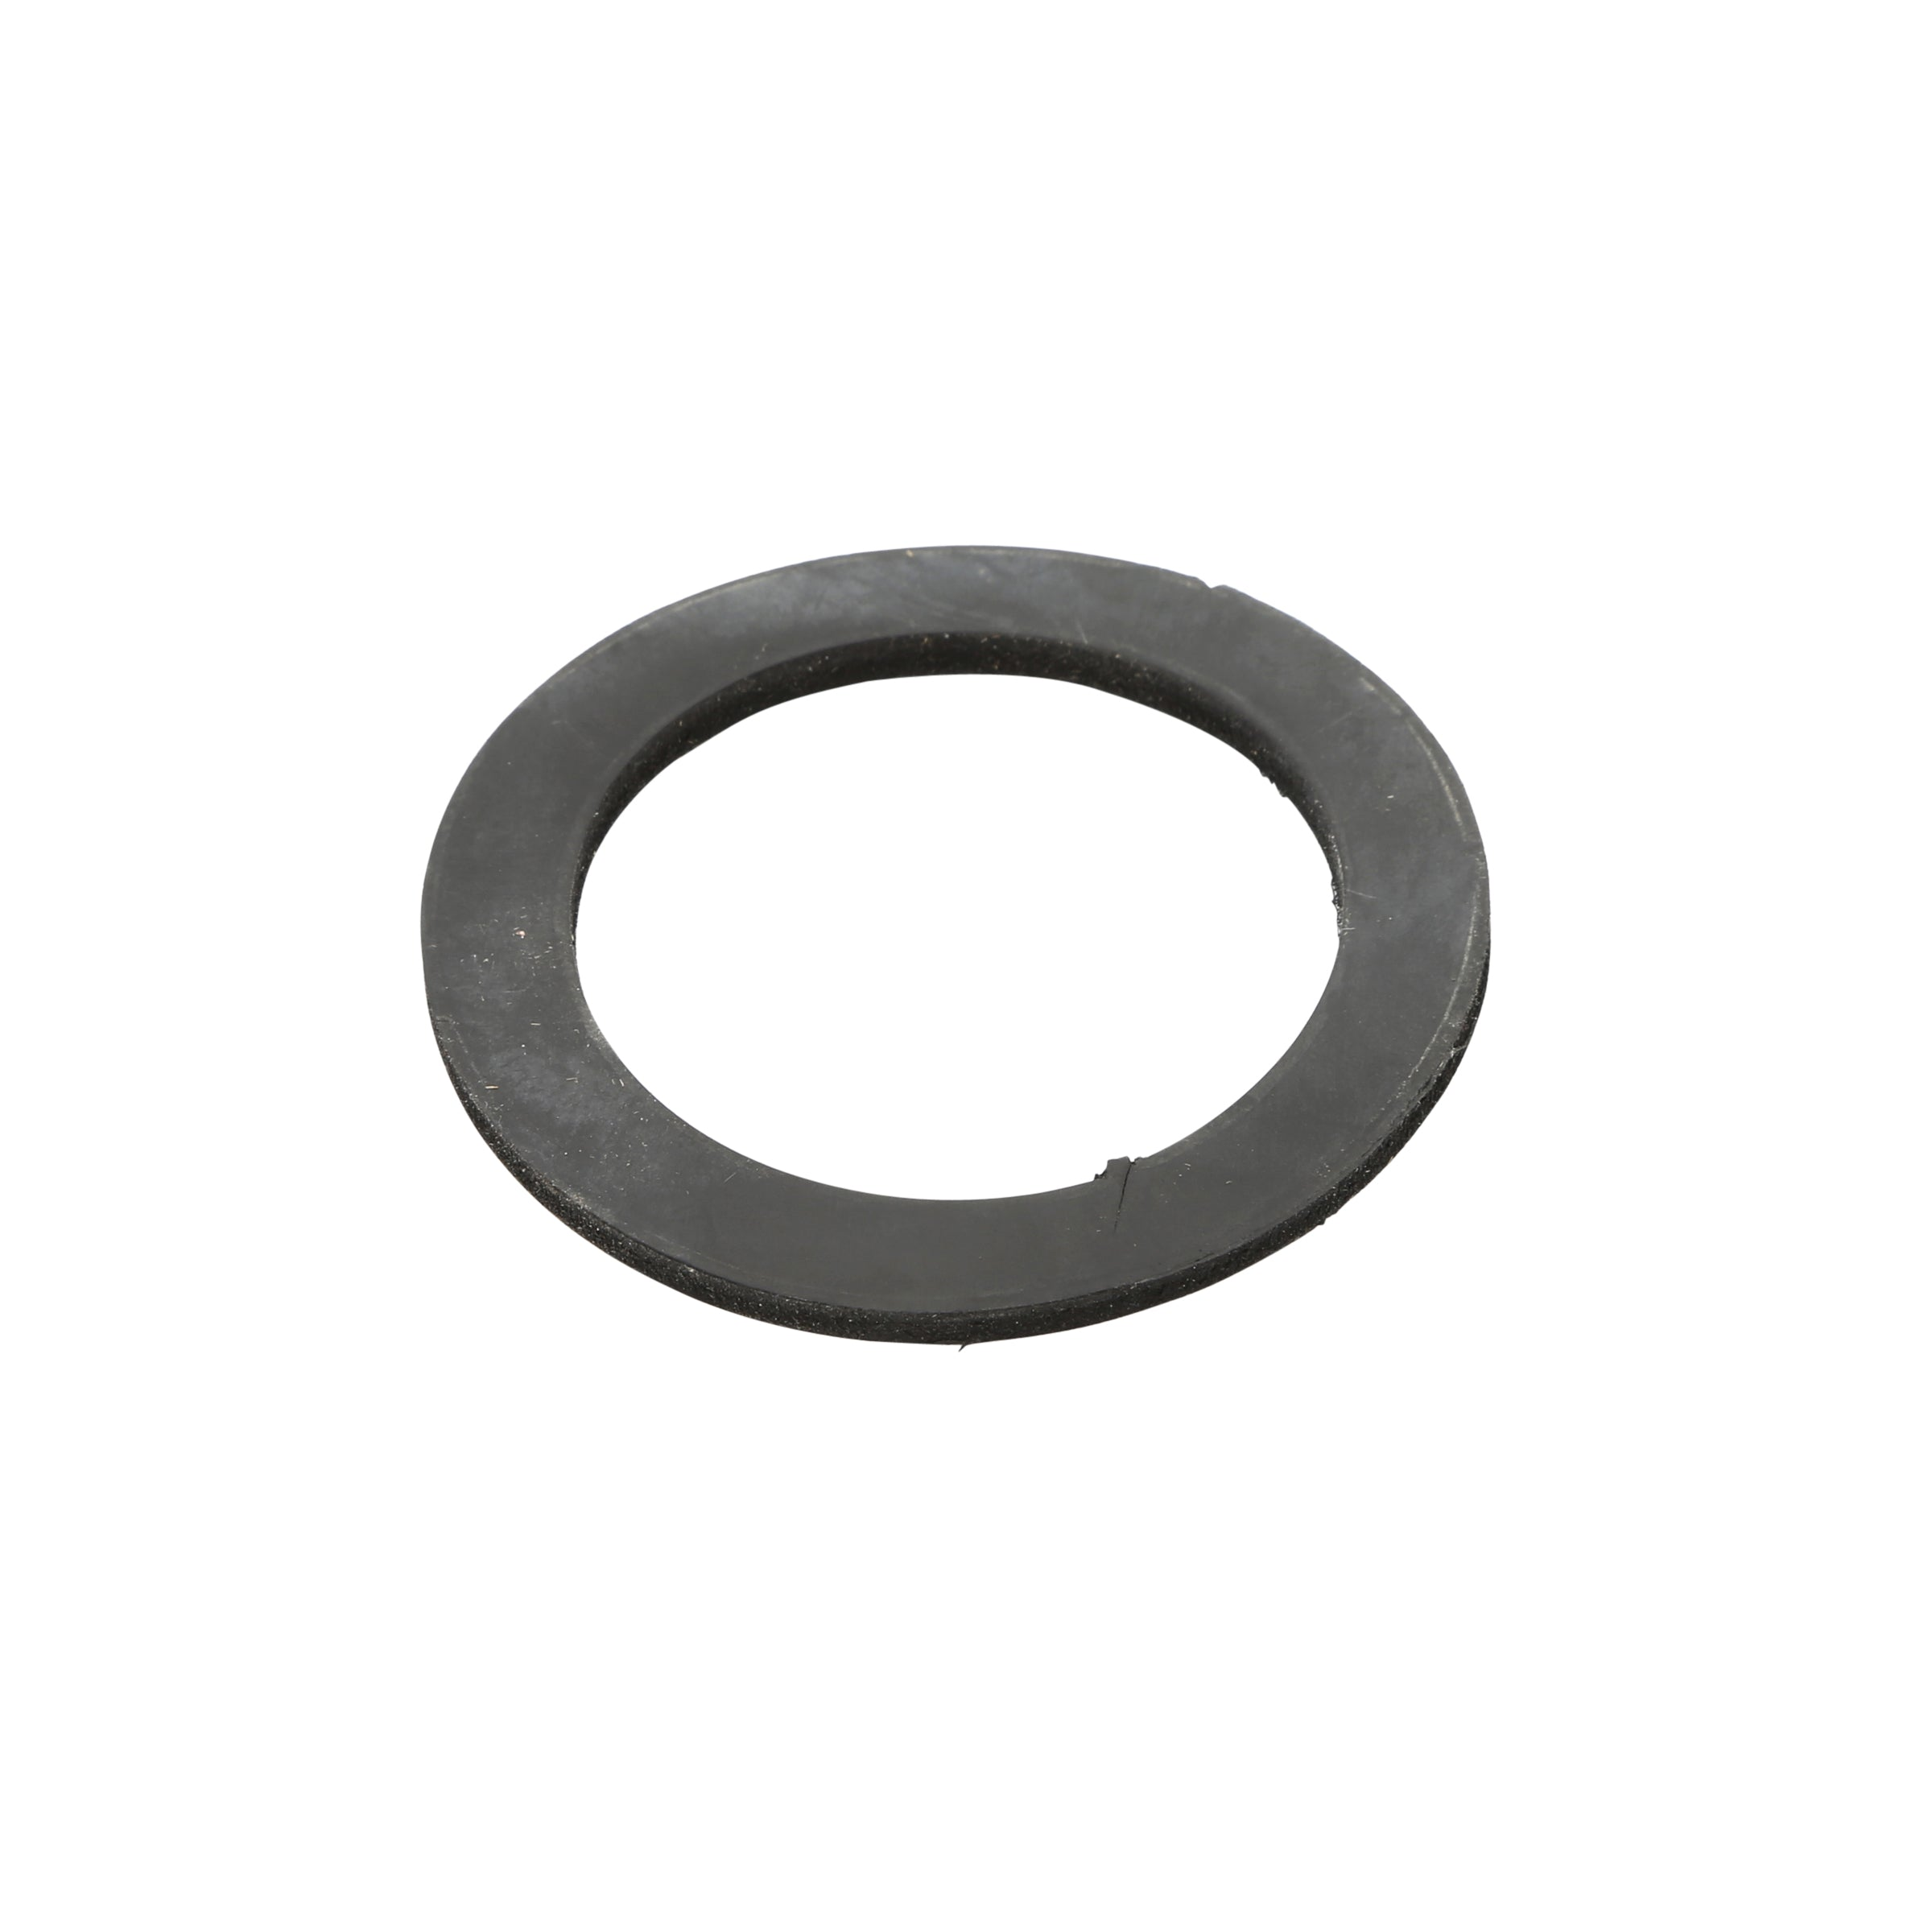 Motometer Rubber Gasket • 1928-31 Model A Ford